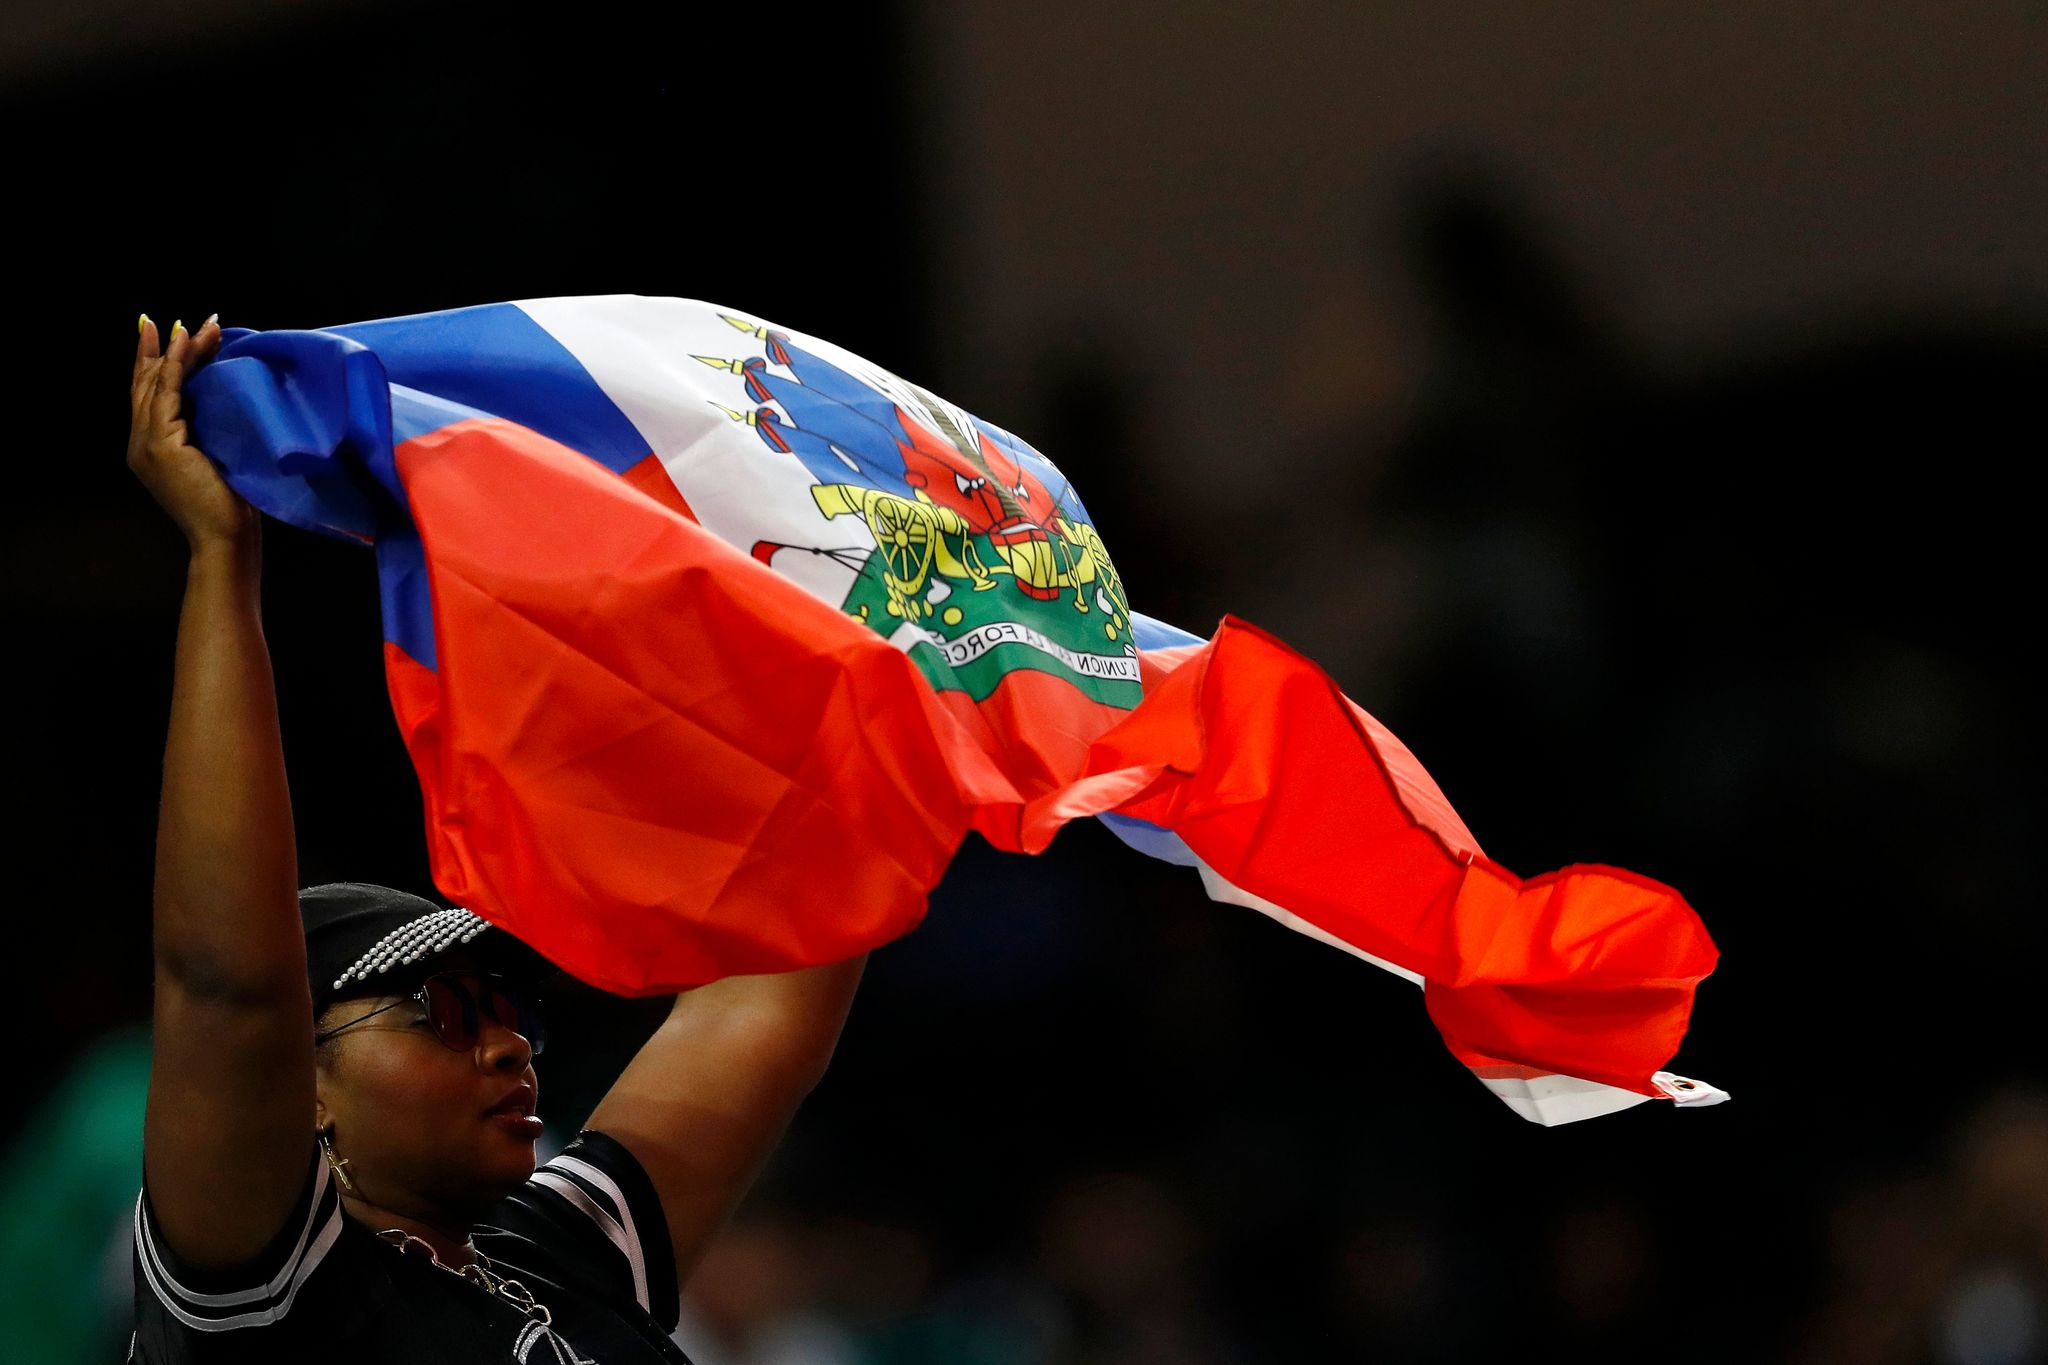 A <HIT>Haiti</HIT> fans cheers on her team during the CONCACAF Gold Cup Quarterfinal football match between <HIT>Haiti</HIT> and Canada on June 29, 2019 at NRG Stadium in Houston, Texas. (Photo by AARON M. SPRECHER / AFP)